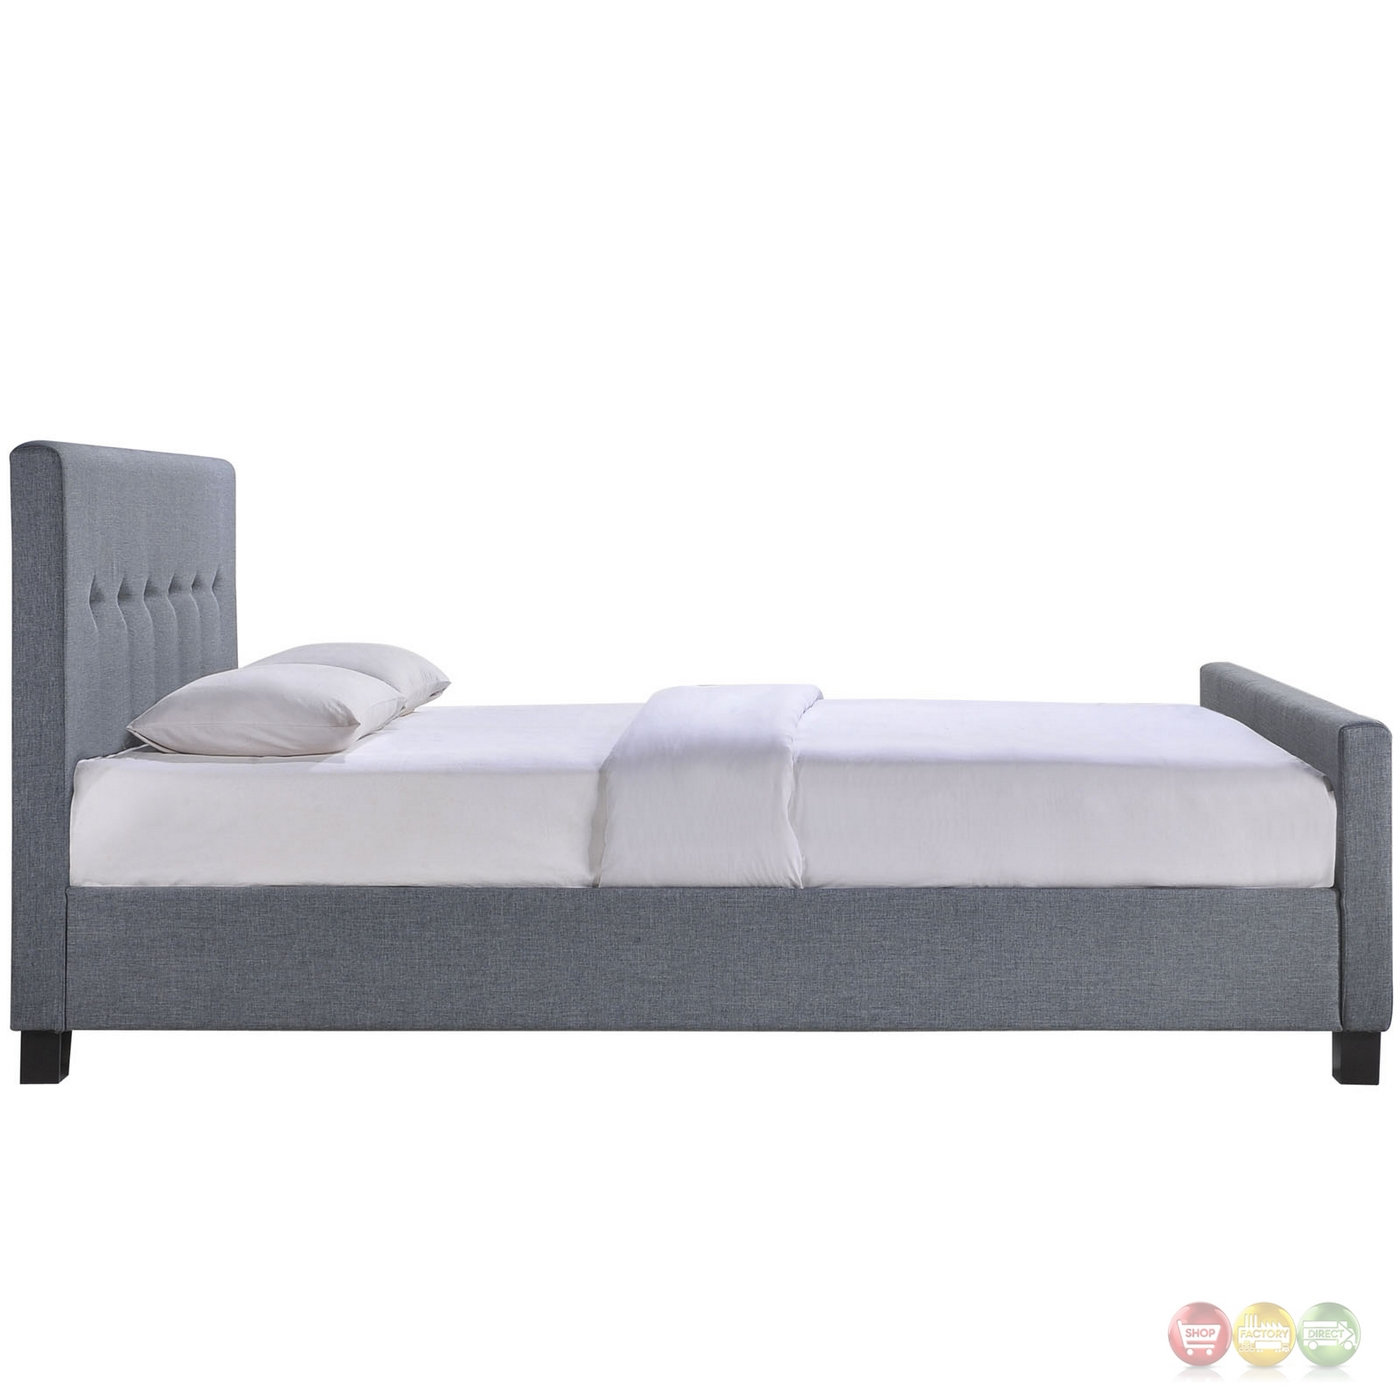 Abigail Contemporary Upholstered Button Tufted King Bed Smoke